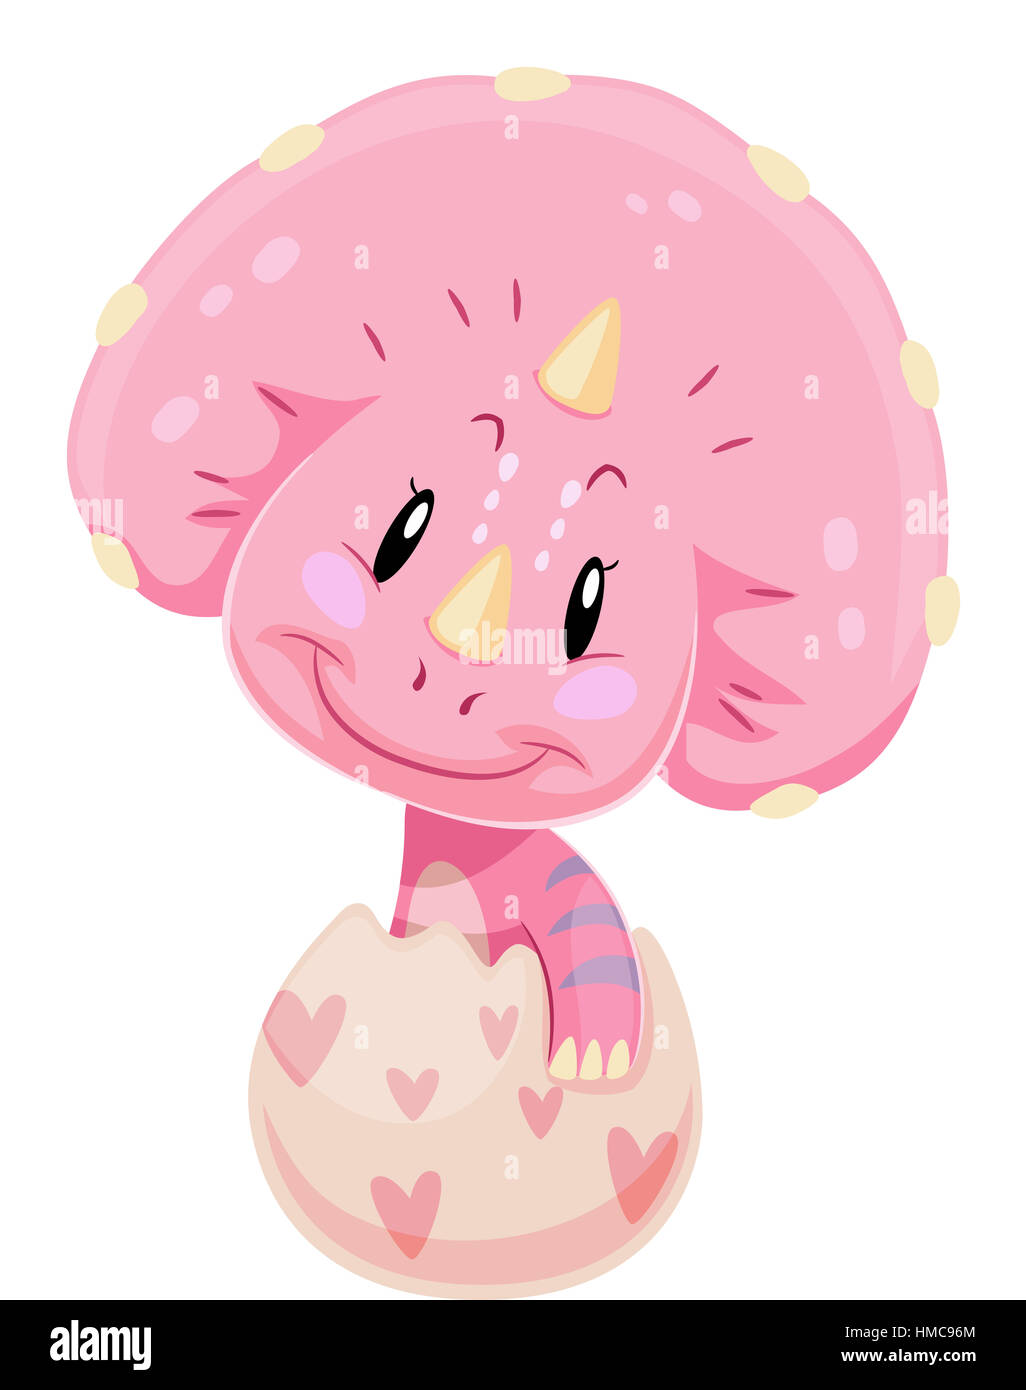 dinosaur illustration of a cute pink baby triceratops